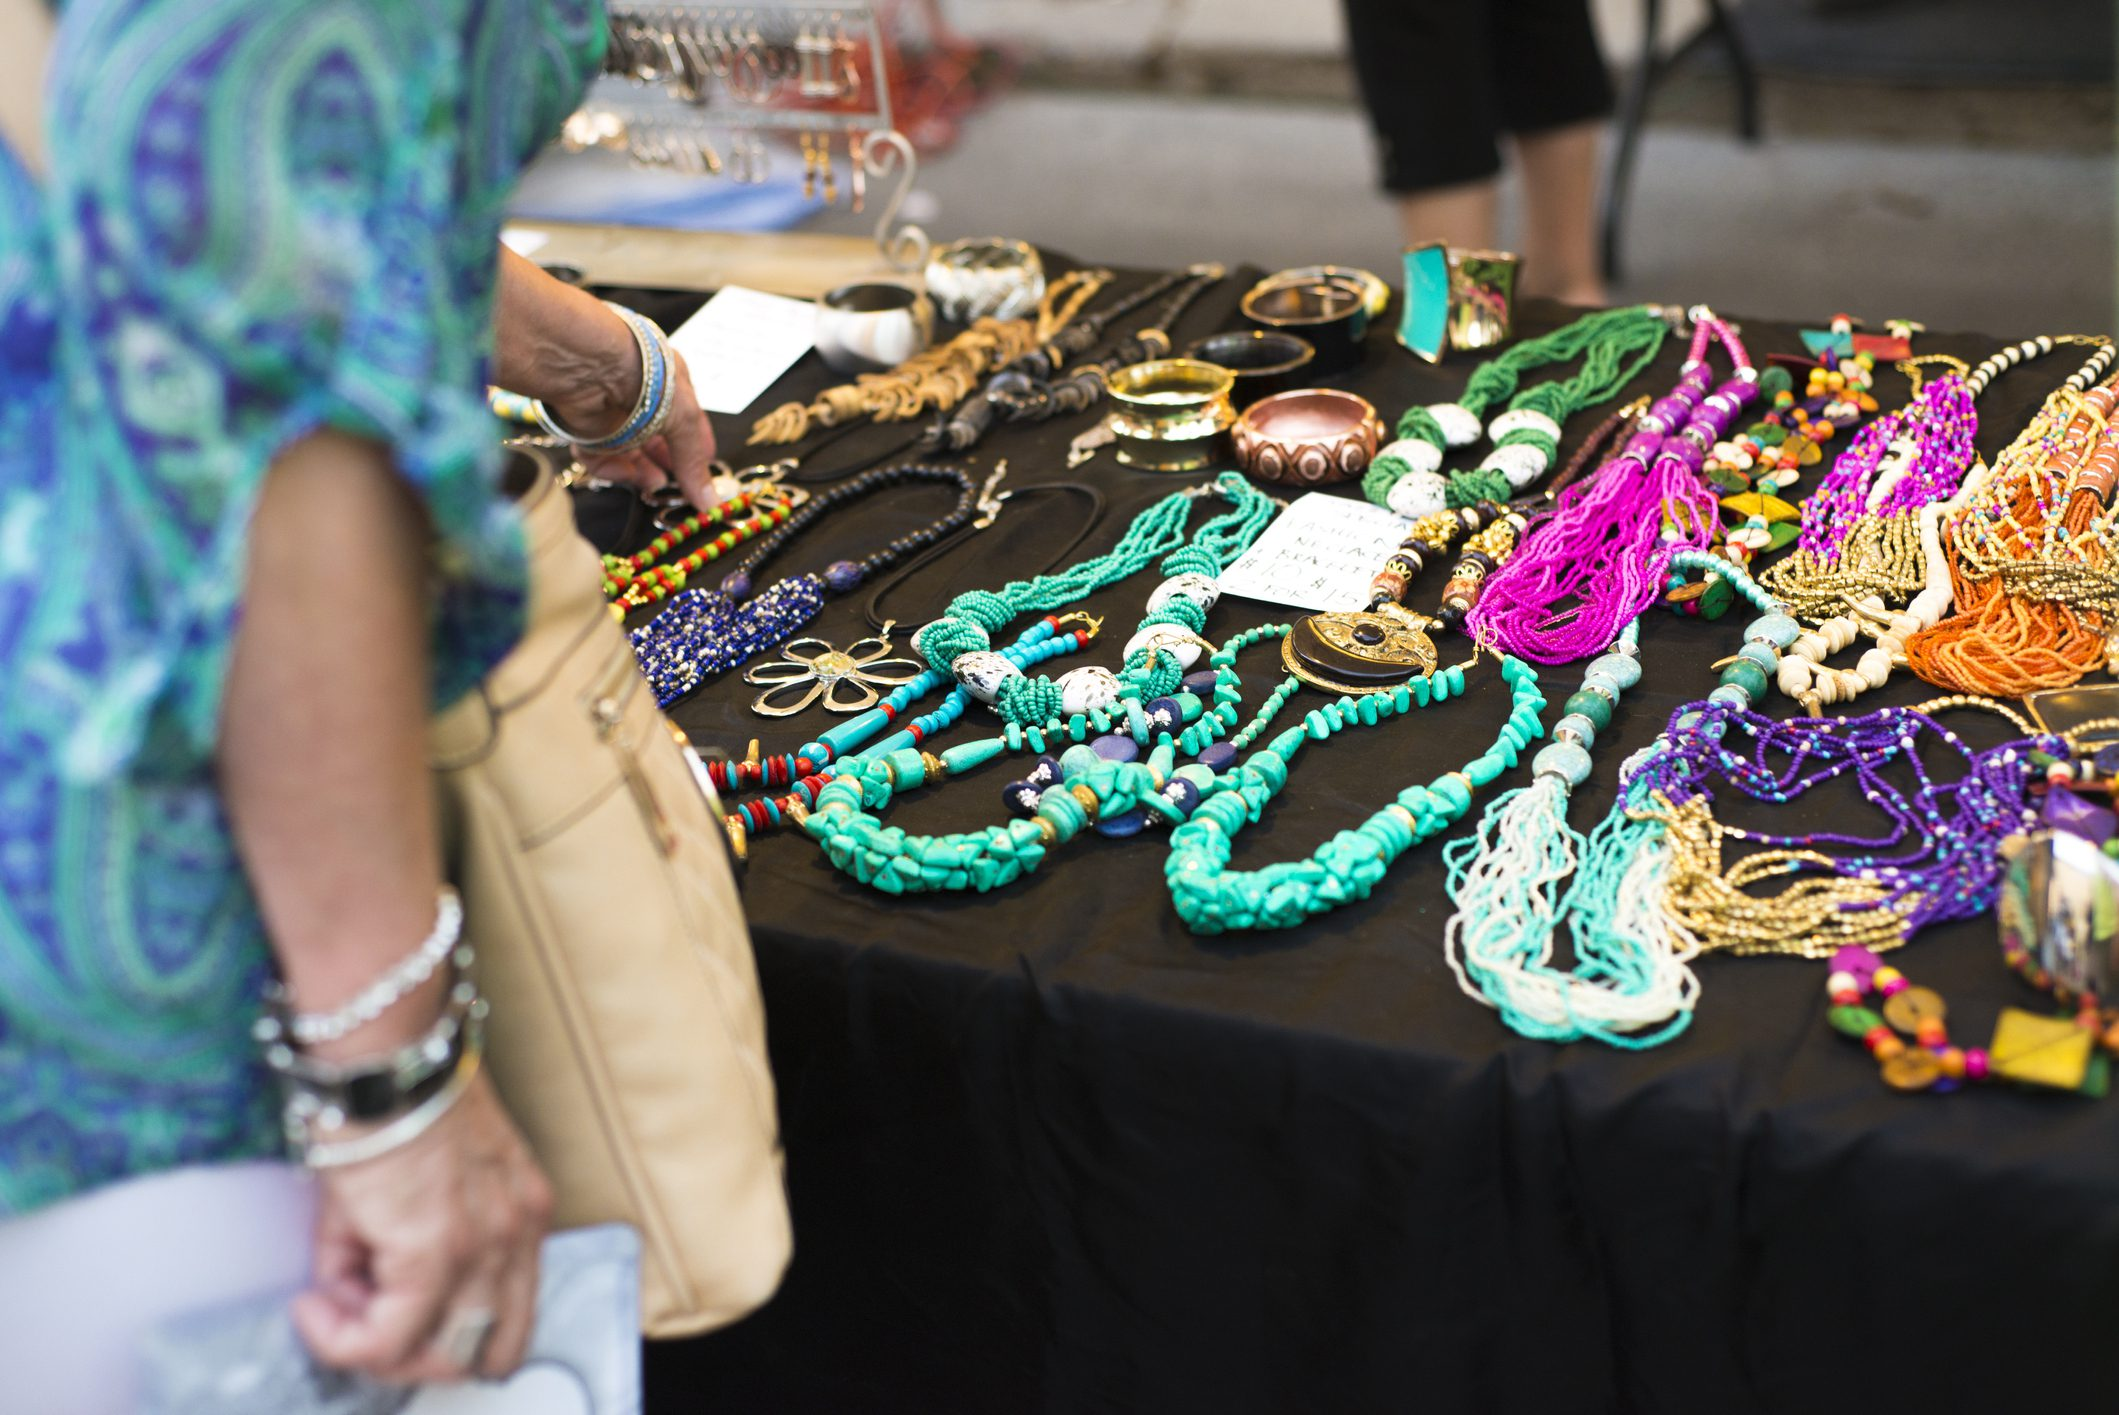 Jewelry on display at festival